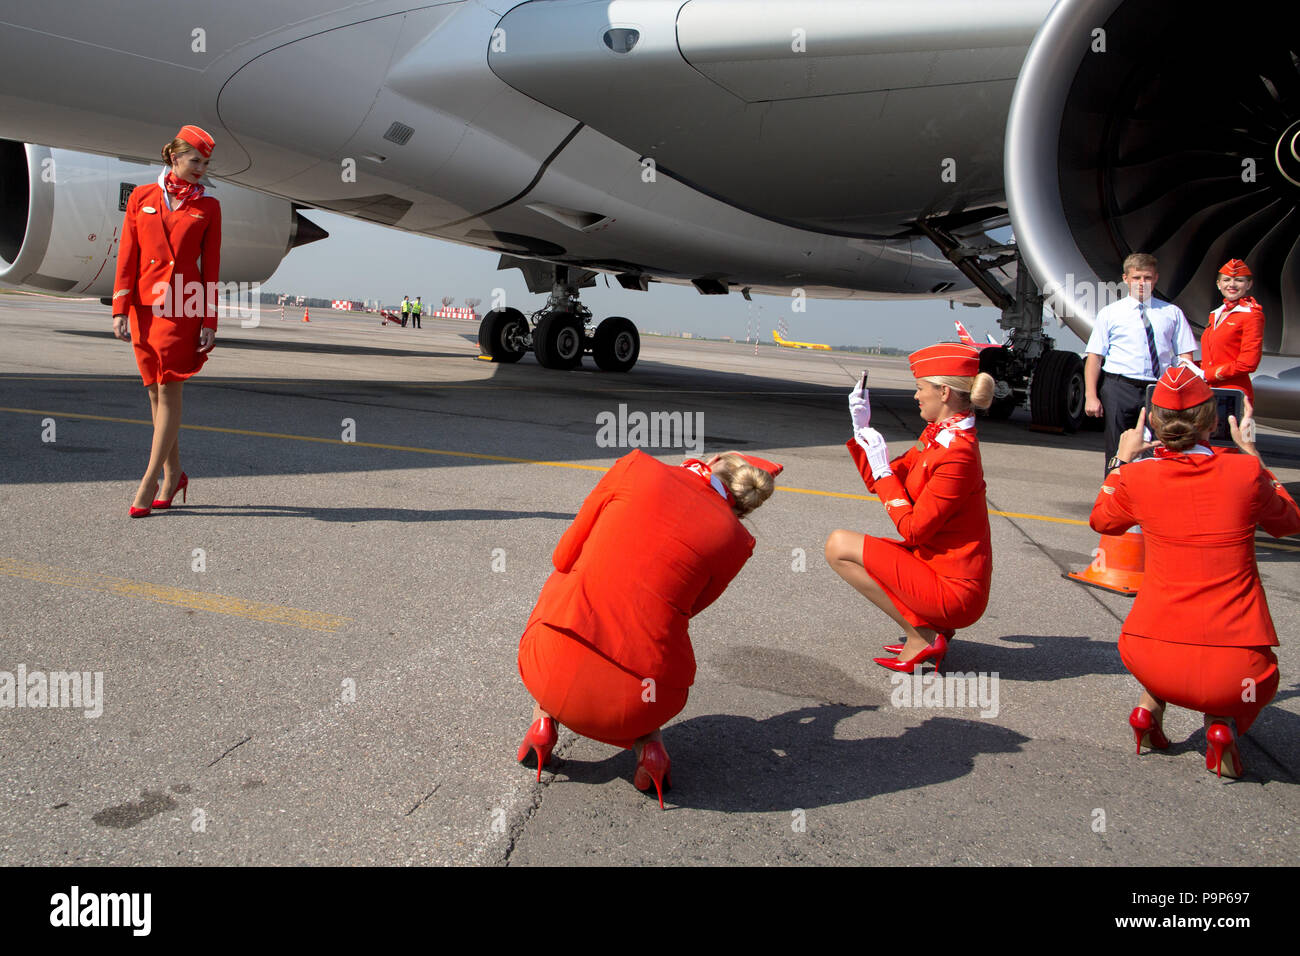 Aeroflot's flight attendants pose for photos near the Airbus A350 civil jet airplane during its visit into Sheremetyevo airport, Moscow, Russia - Stock Image